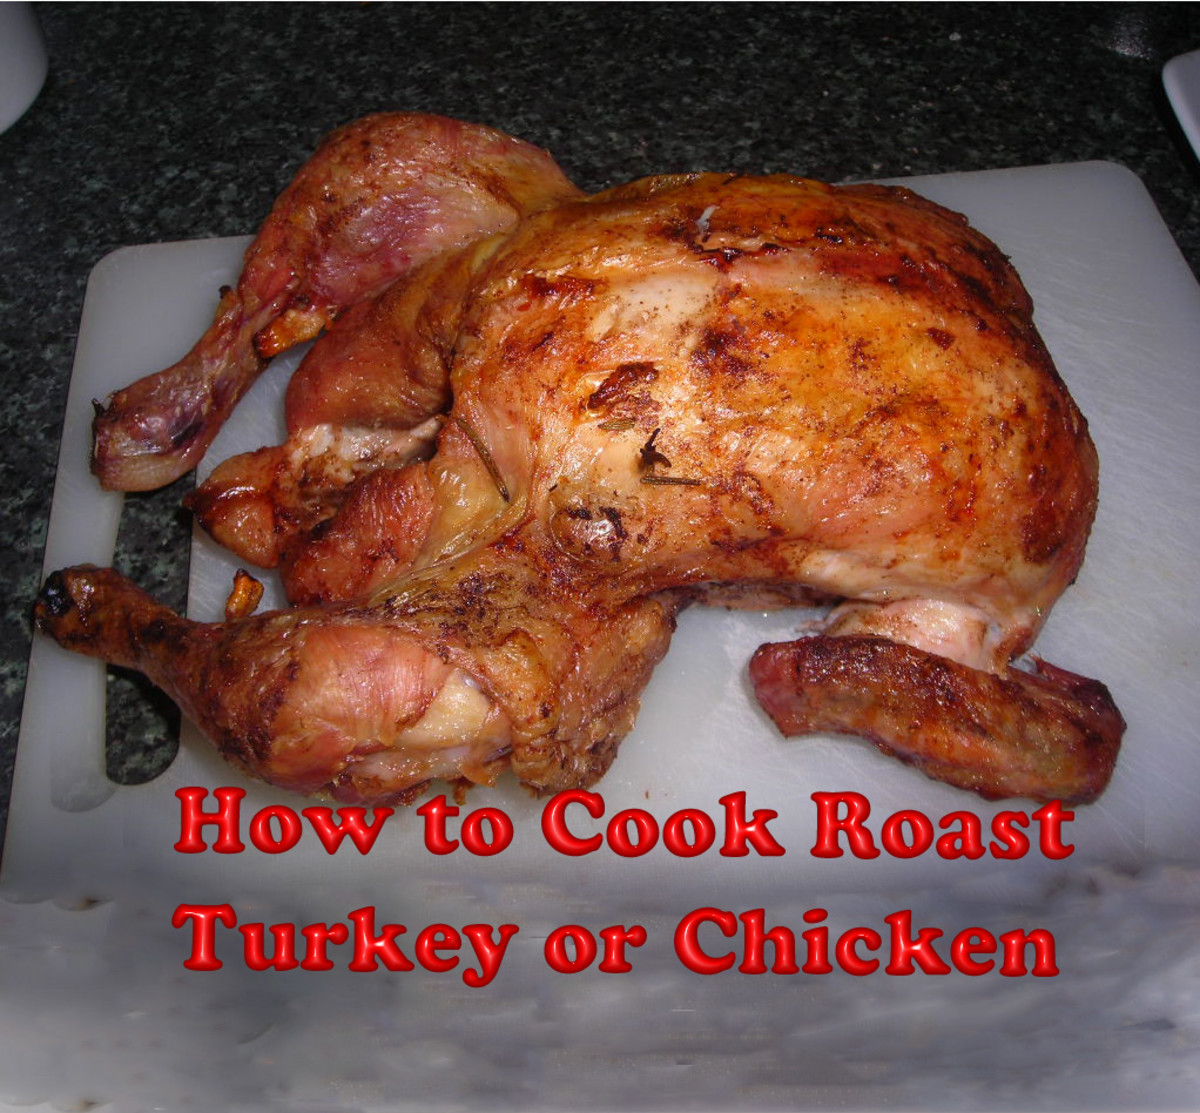 How to Cook Roast Turkey or Chicken - Keep This Recipe for Your Thanksgiving Dinner